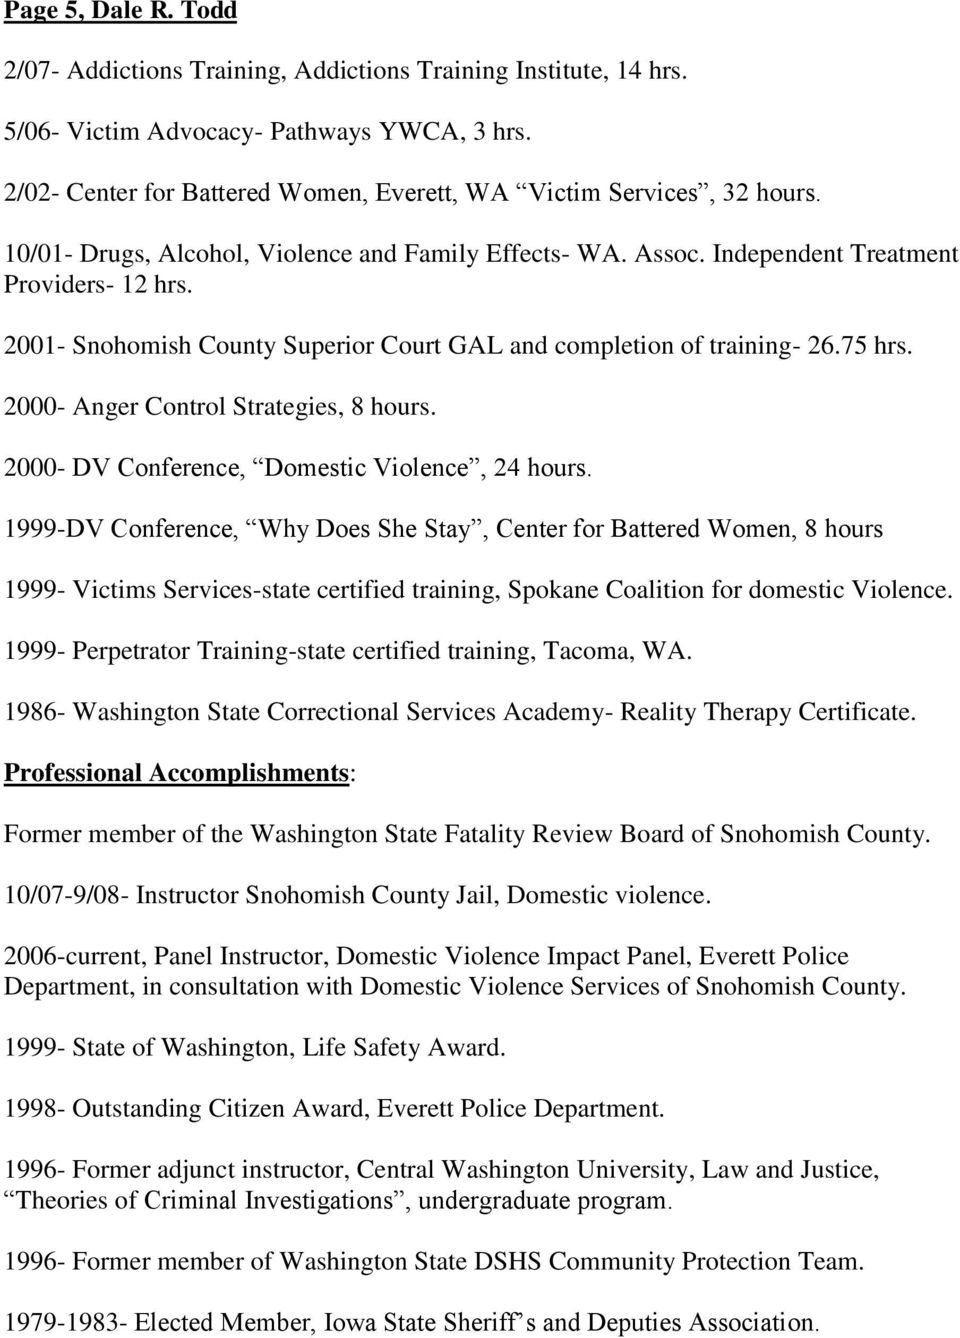 2001- Snohomish County Superior Court GAL and completion of training- 26.75 hrs. 2000- Anger Control Strategies, 8 hours. 2000- DV Conference, Domestic Violence, 24 hours.